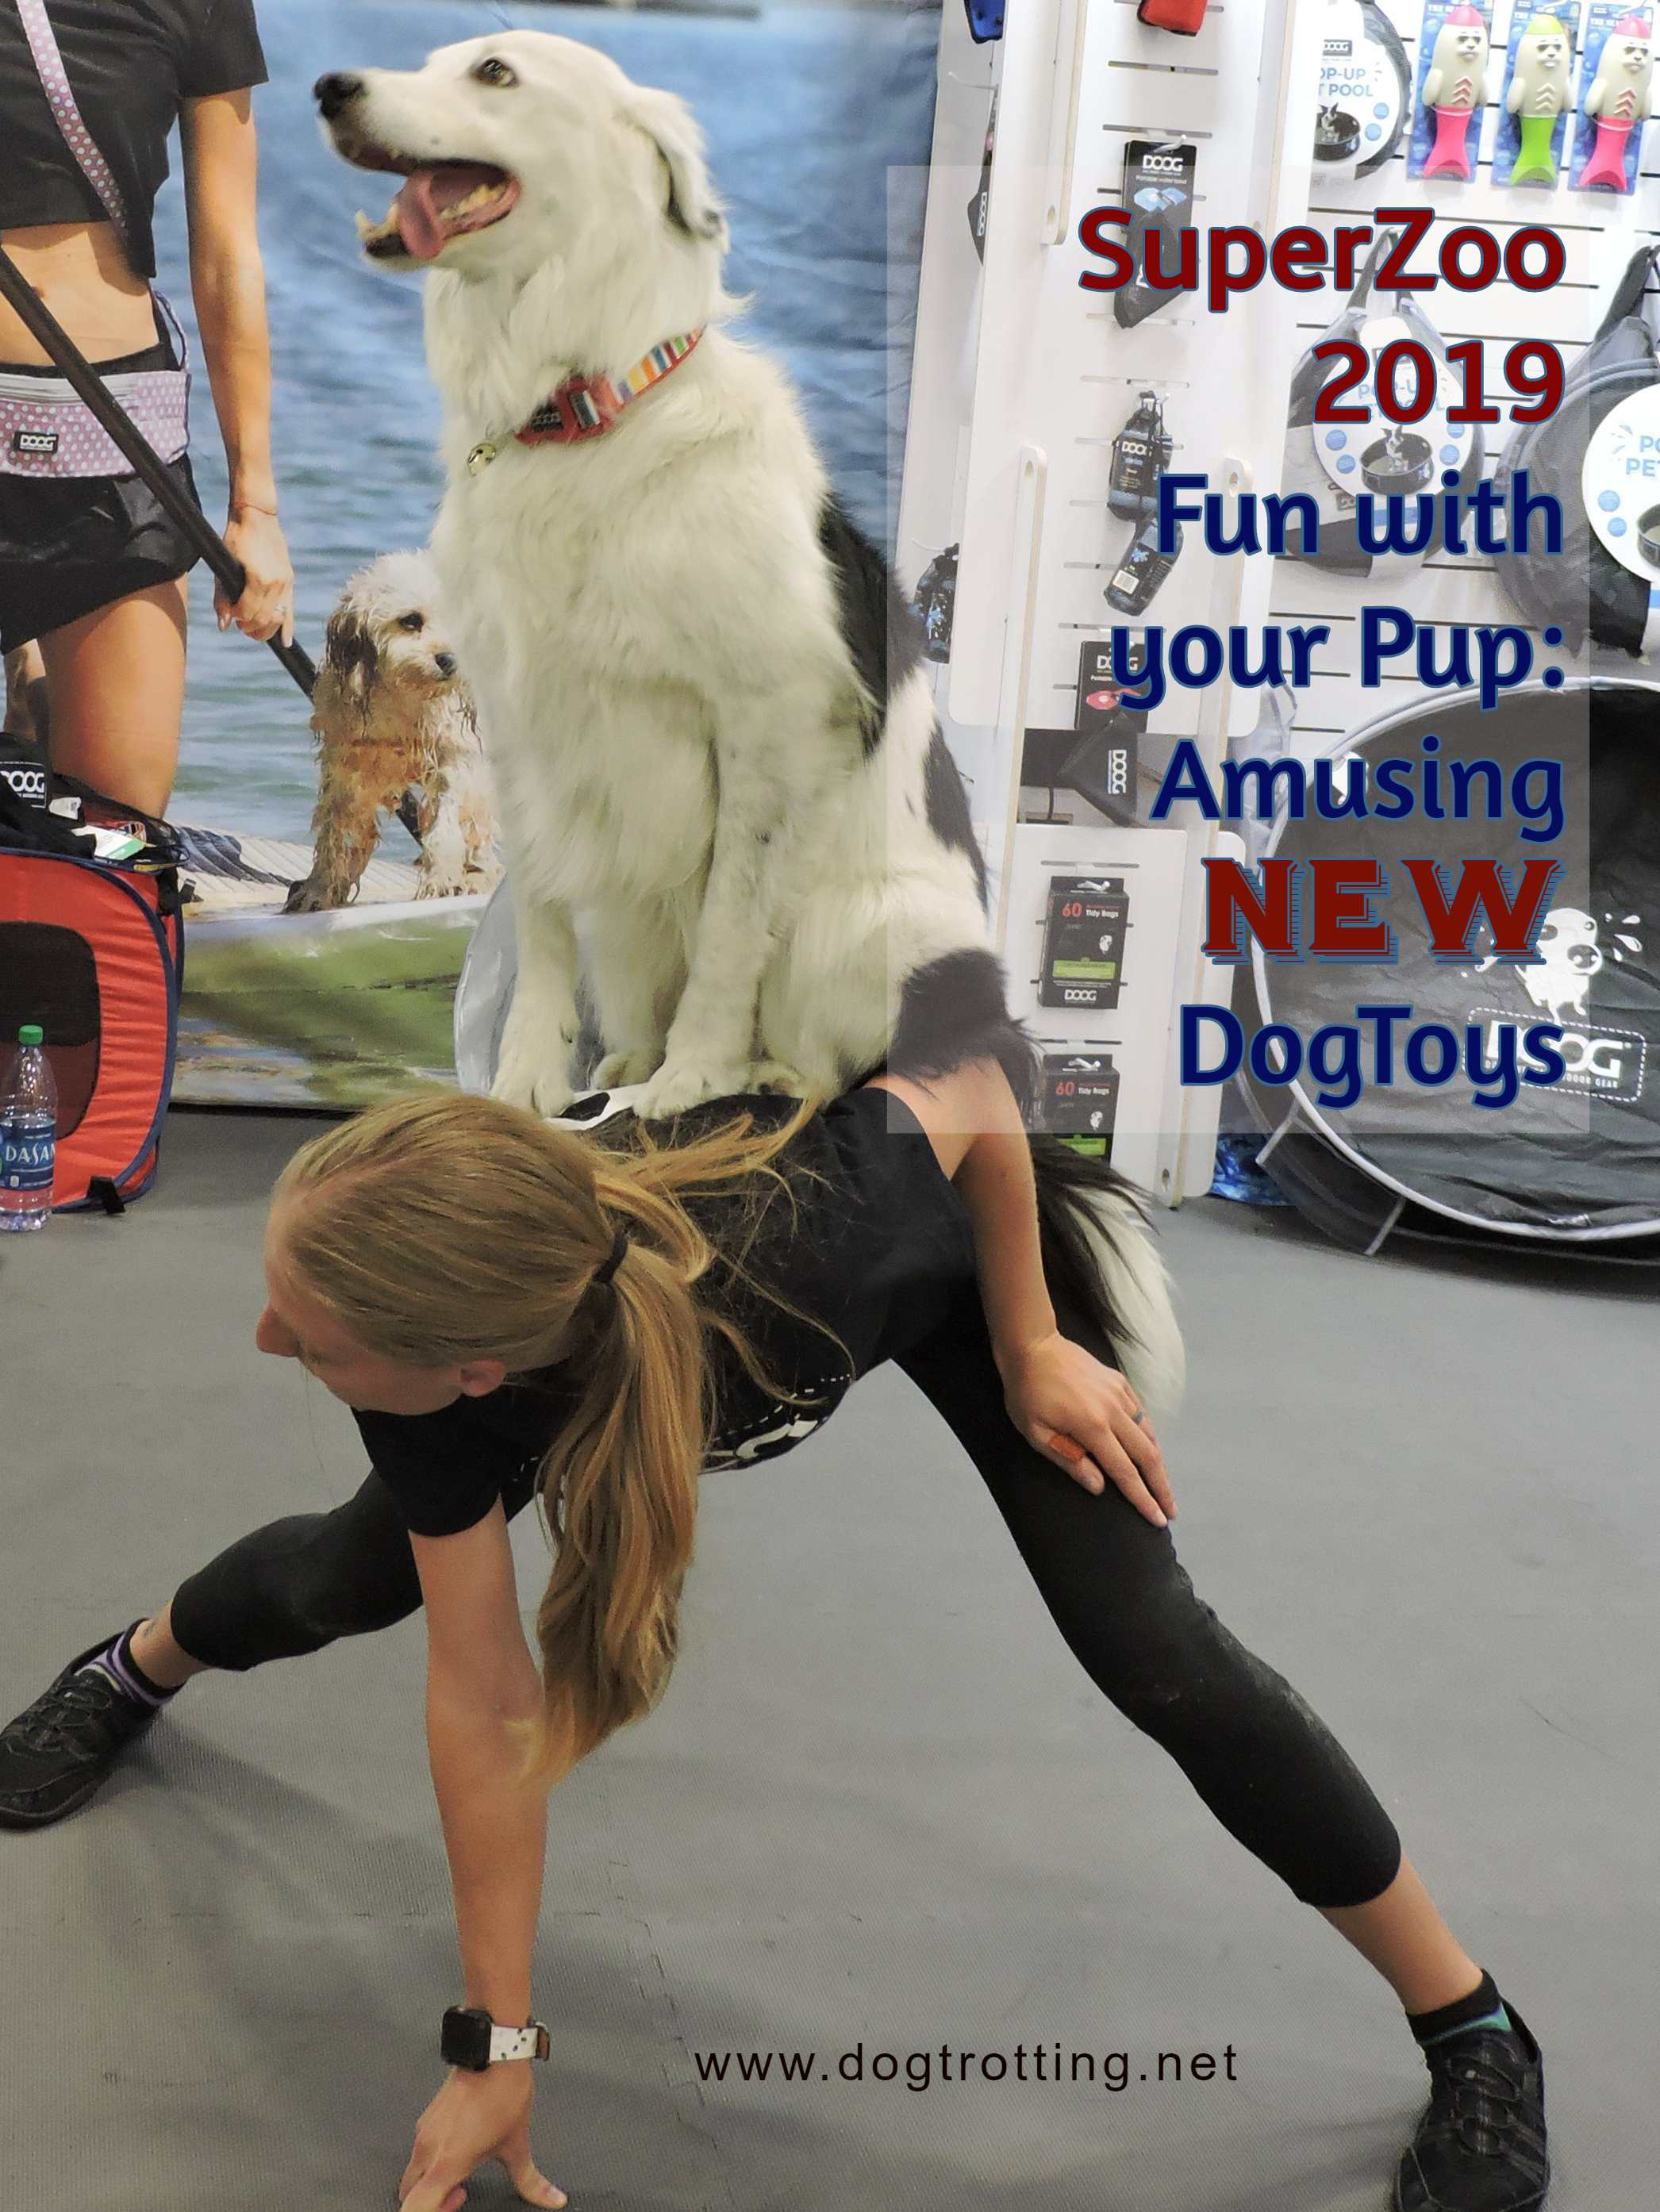 Fetch the Funny: Amusing Dog Toys at SuperZoo 2019 Las Vegas